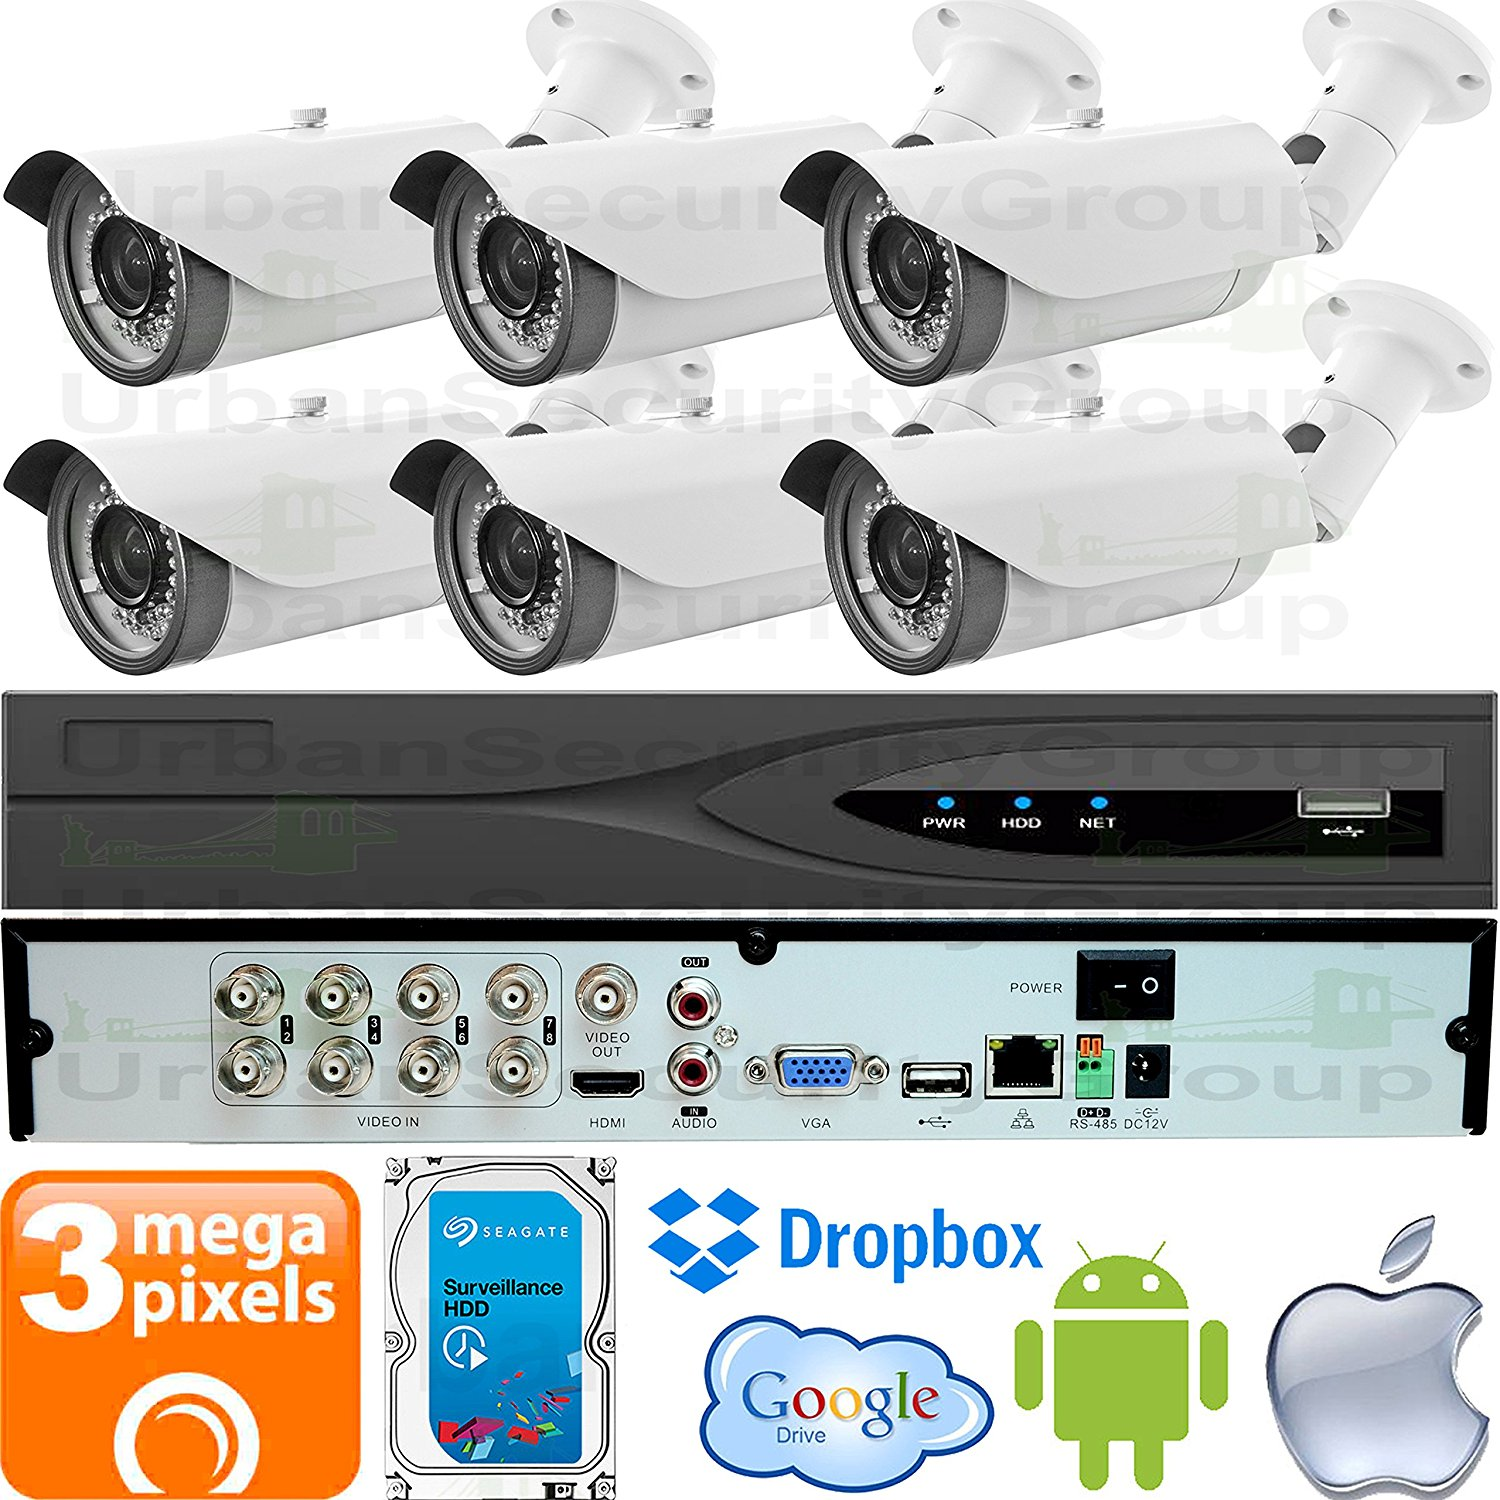 USG Business Grade 3MP 6 Camera Security System CCTV Kit : 6x 3MP 2.8-12mm Vari-Focal Bullet Cameras + 1x 8 Channel 3MP DVR + 1x 4TB HDD : Apple Android Phone App : Coaxial BNC Cable : Plug & Play